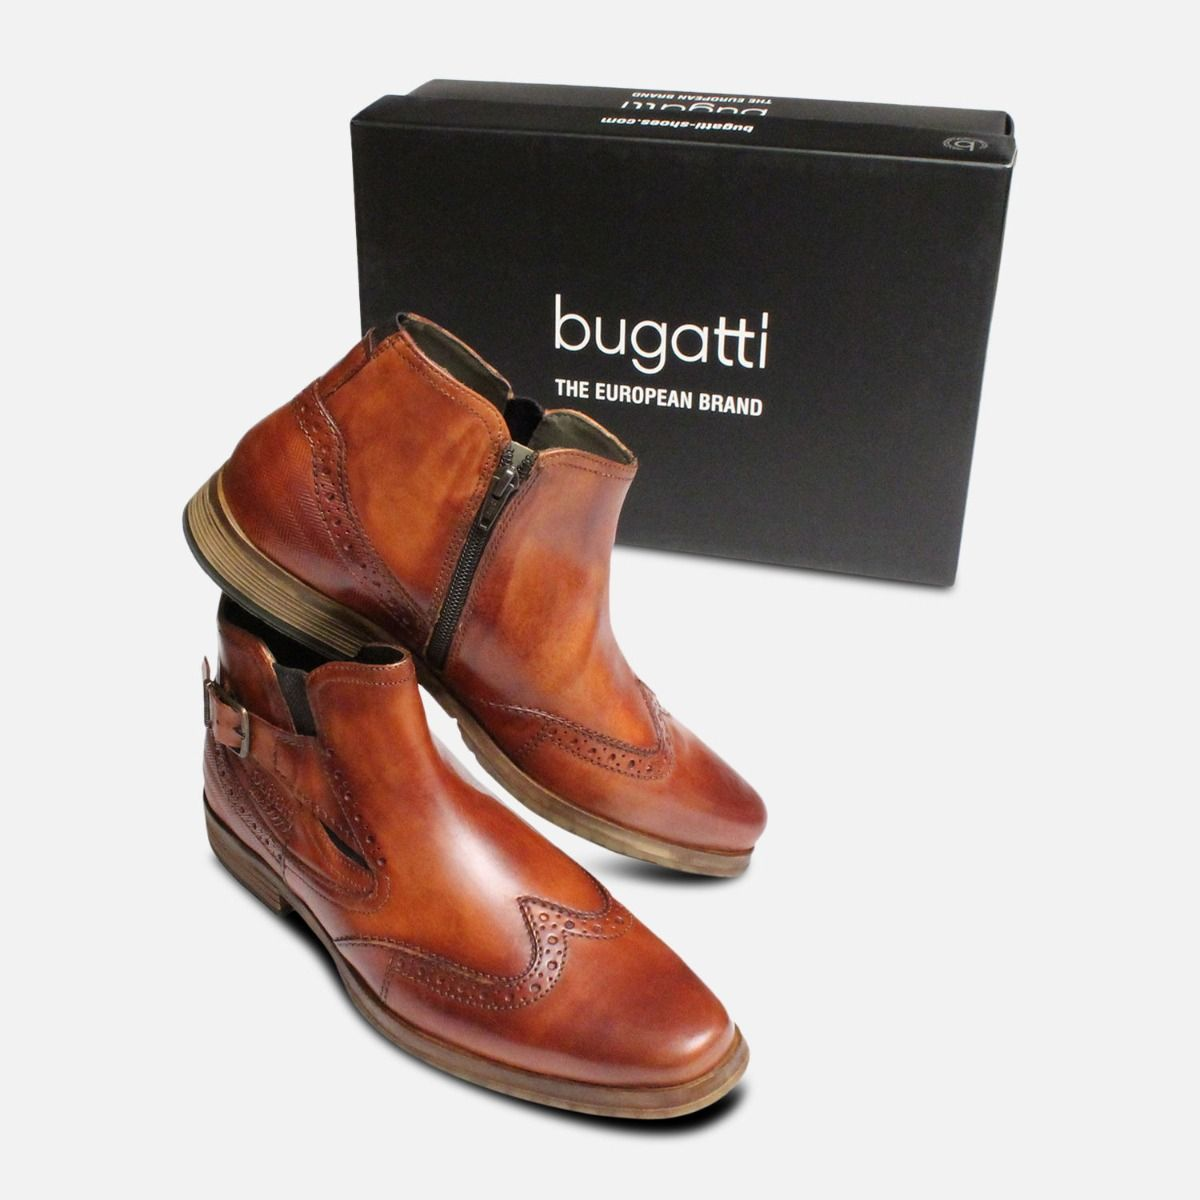 coupon code 2018 sneakers ever popular Regent Demi Boots in Antique Tan by Bugatti Shoes